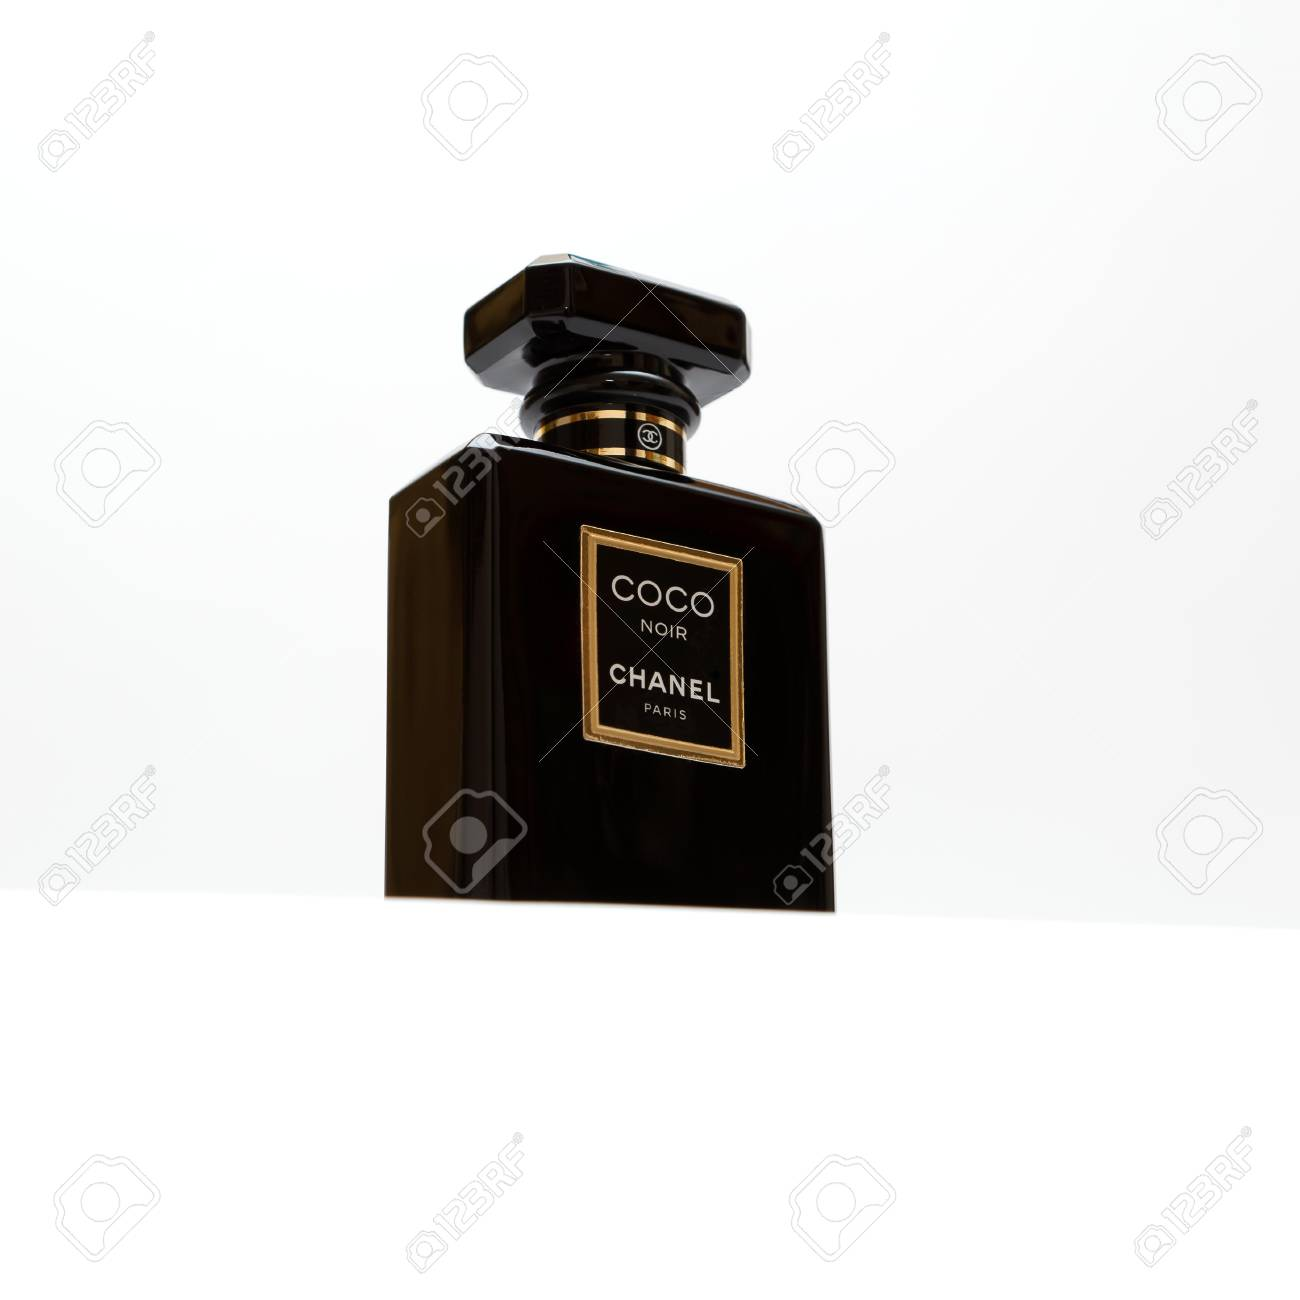 Russia October 11 2015 Coco Chanel Noir Black Perfume Bottle